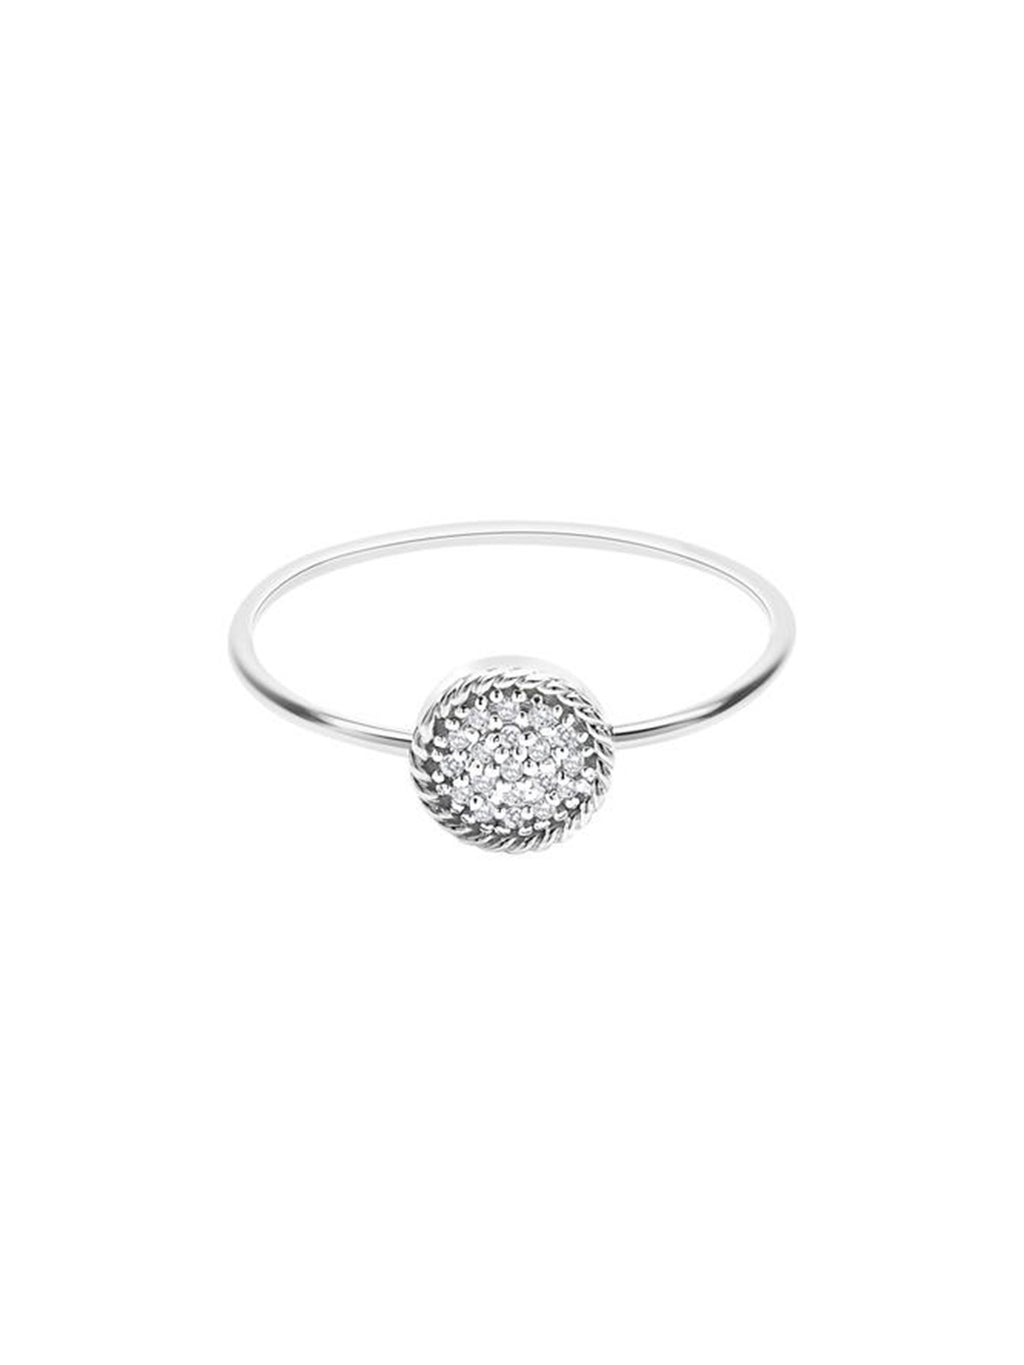 Diamond Circle Ring - Alef Bet Jewelry by Paula